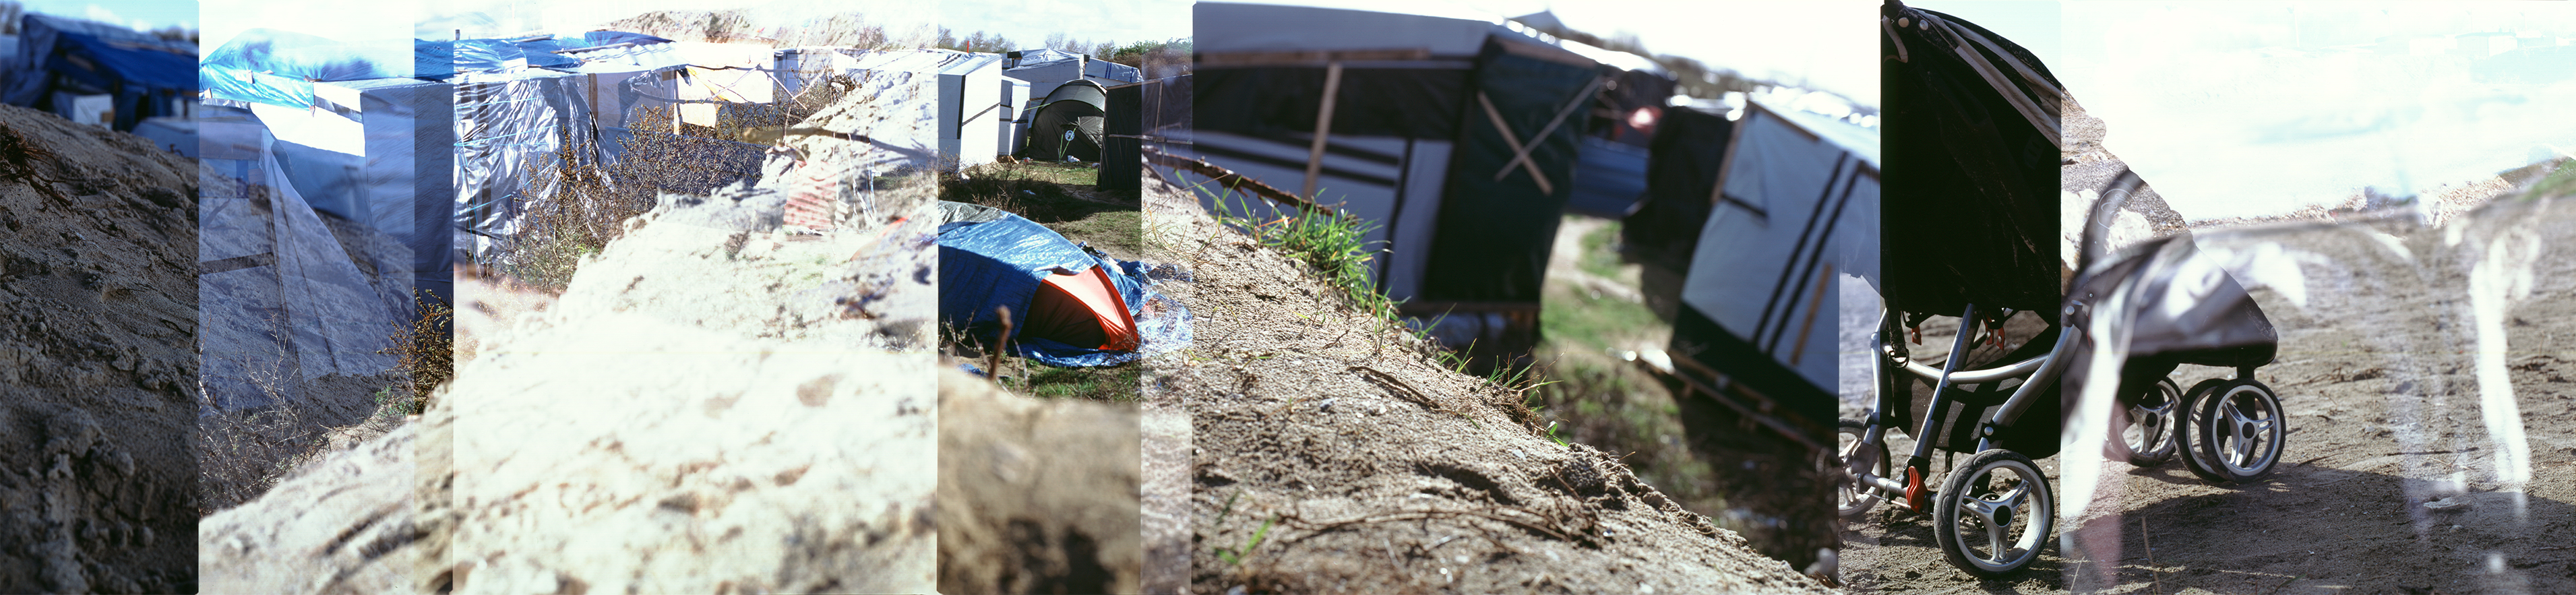 Calais refugees camp-tents-sandwall-panorama